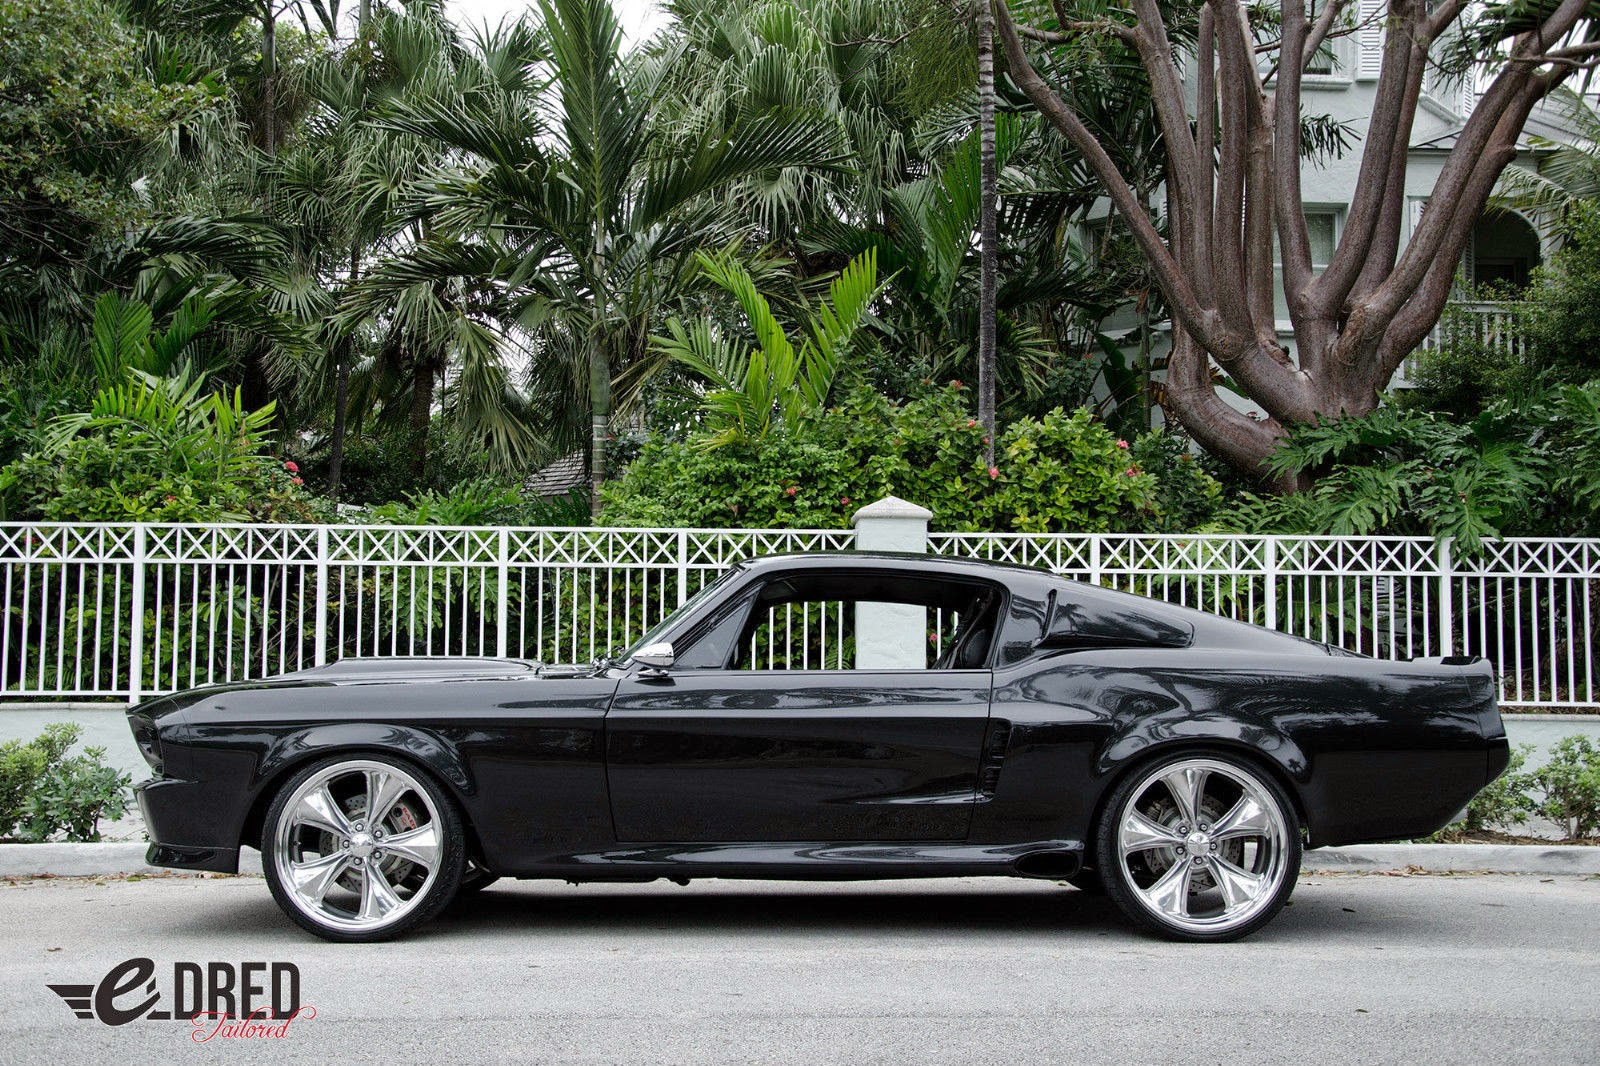 Picture of 1969 ford mustang fastback exterior - This Piece Of American History Is Truly Art From The Exterior Body Where Charcoal Metallic Grey Graces Its Curves To The Silver Striping That Runs Down Its